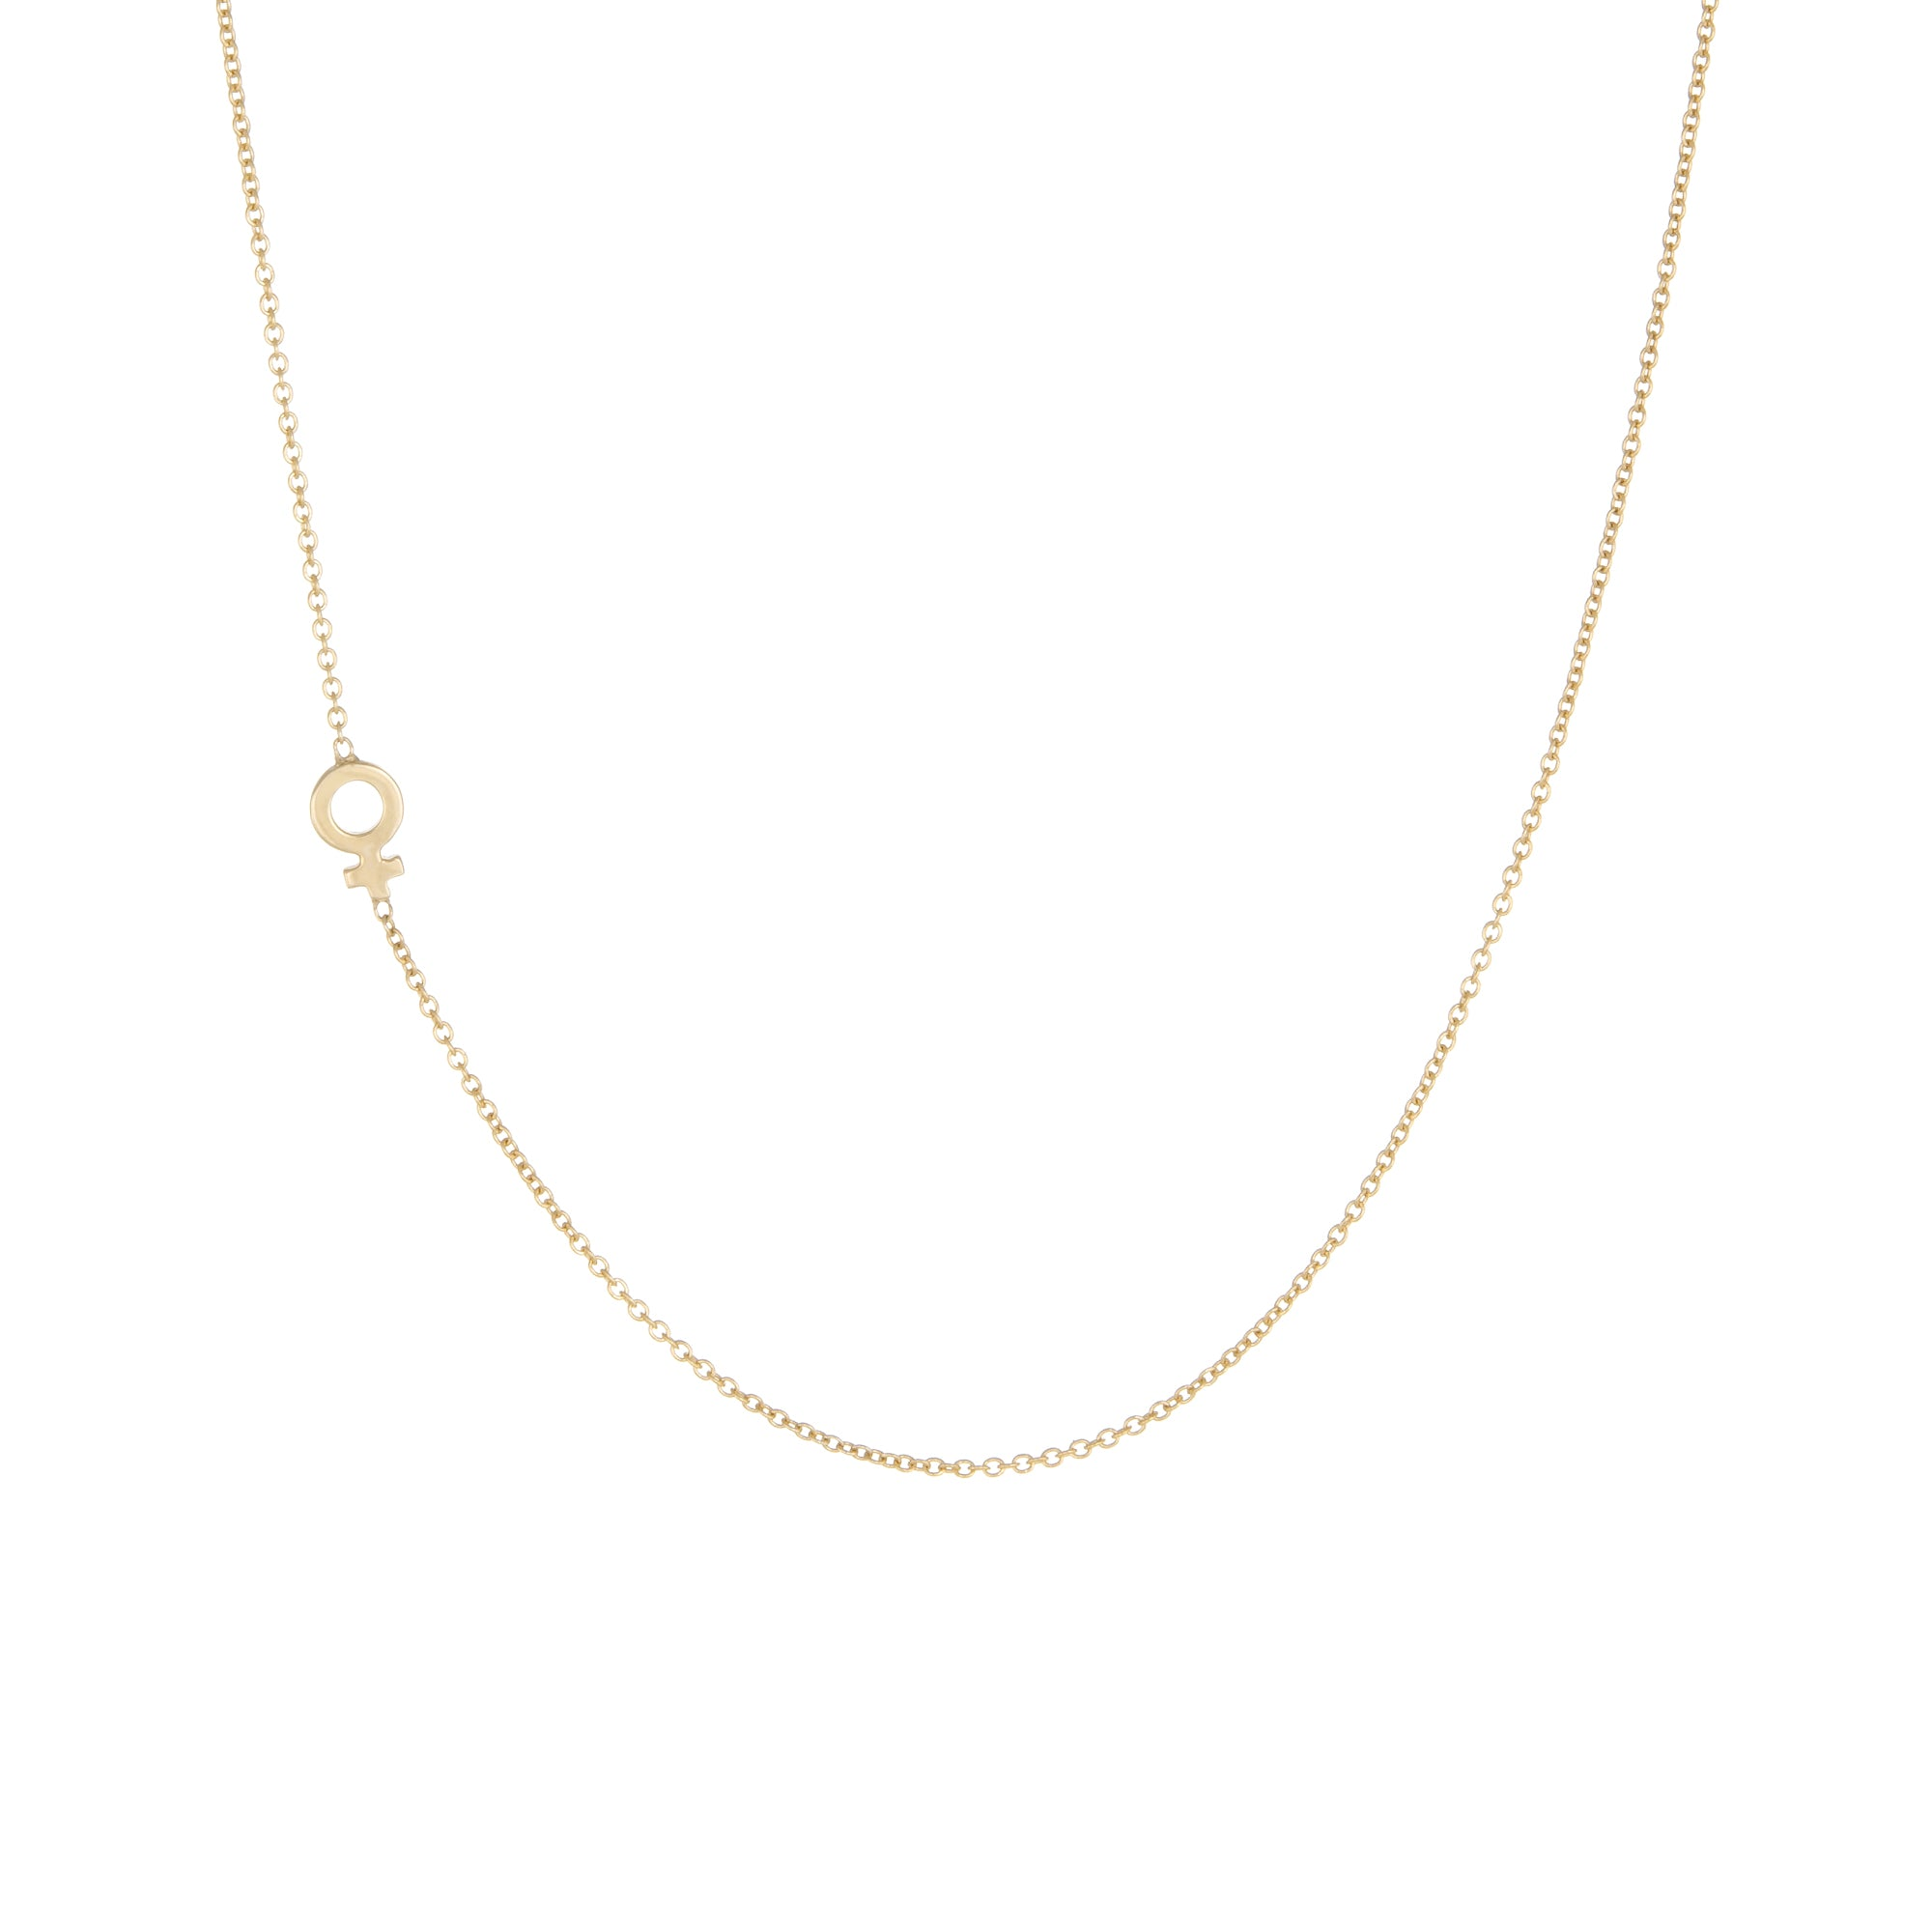 zu jewellery pendant pure products collection venus necklace